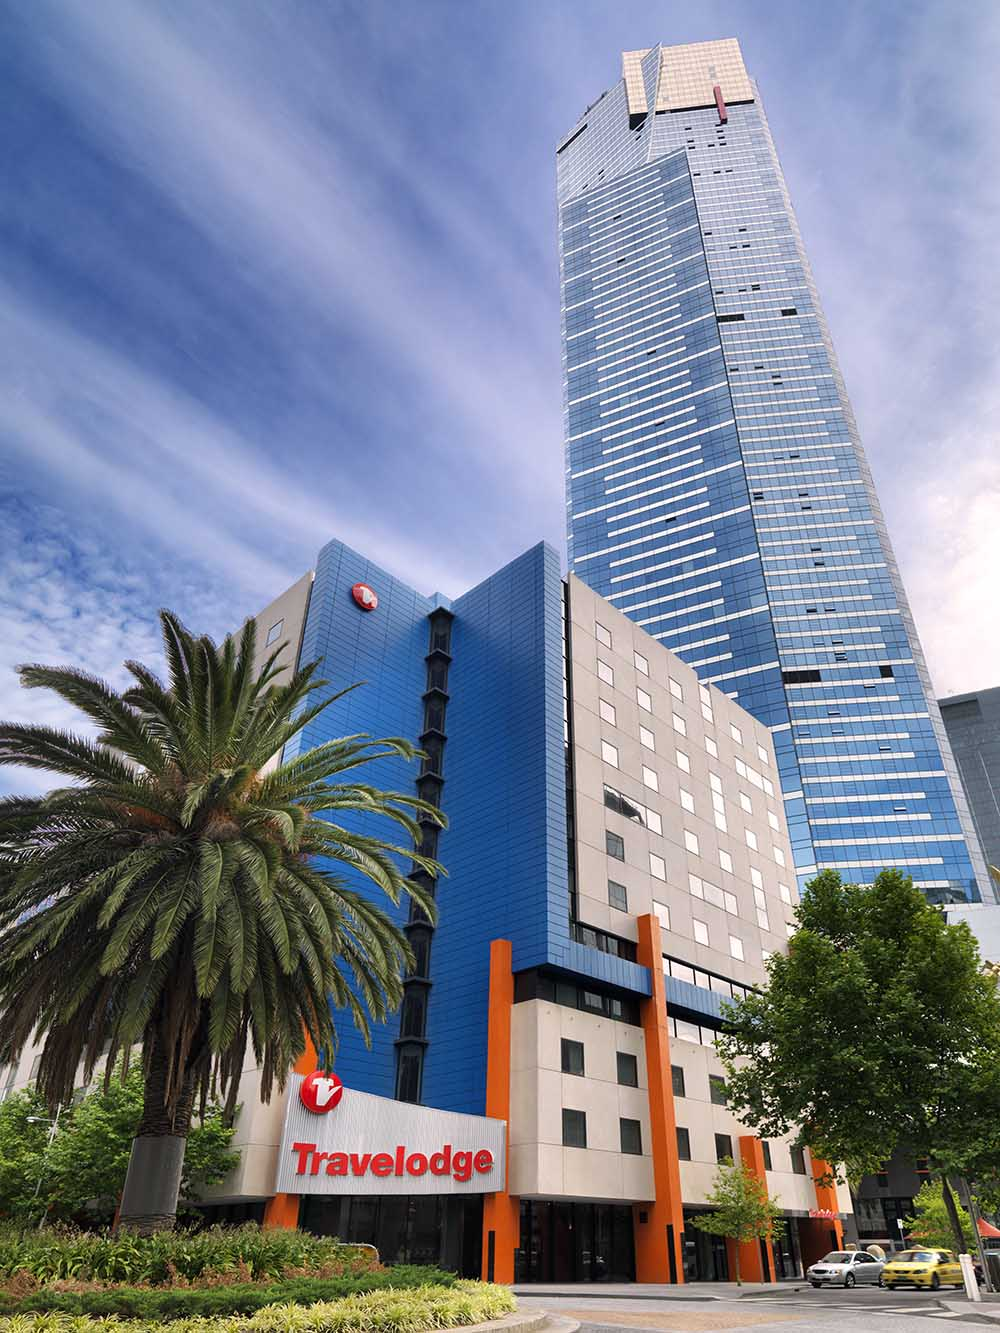 travelodge-southbank-melbourne-hotel-guest-room-exterior-2-2012[1][1]